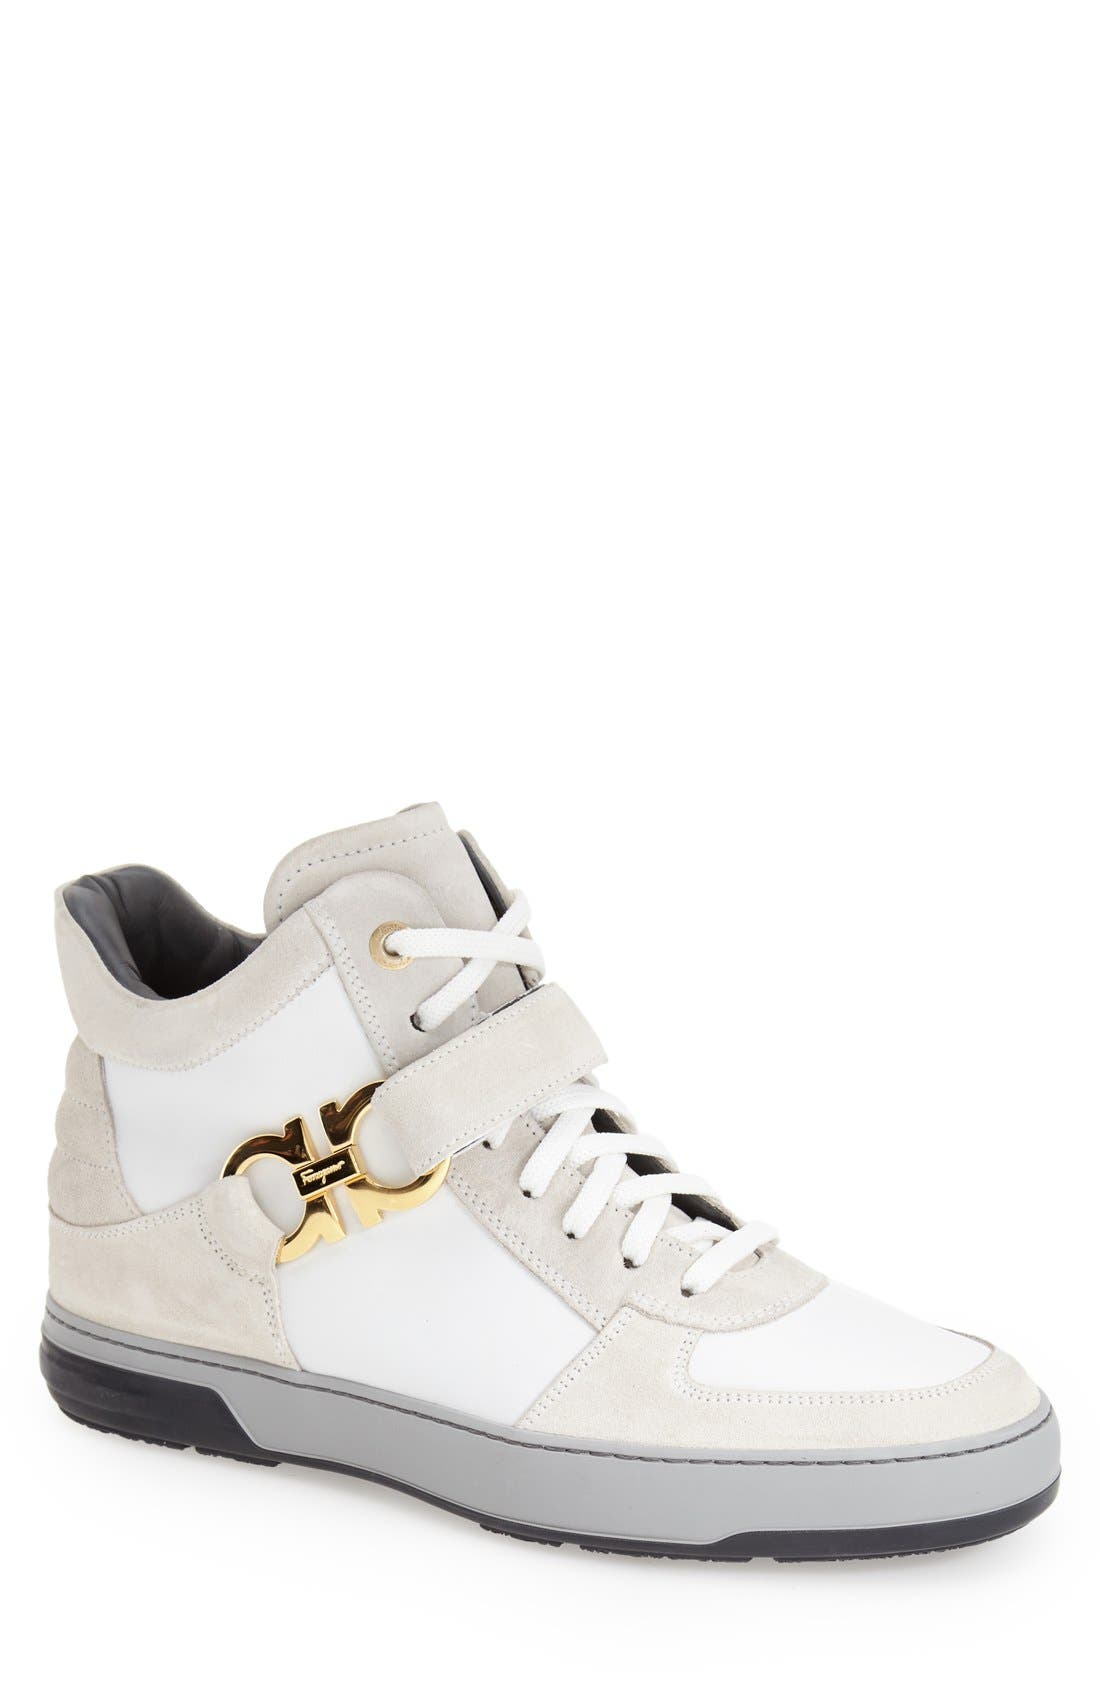 'Nayon' High Top Sneaker, Main, color, 286